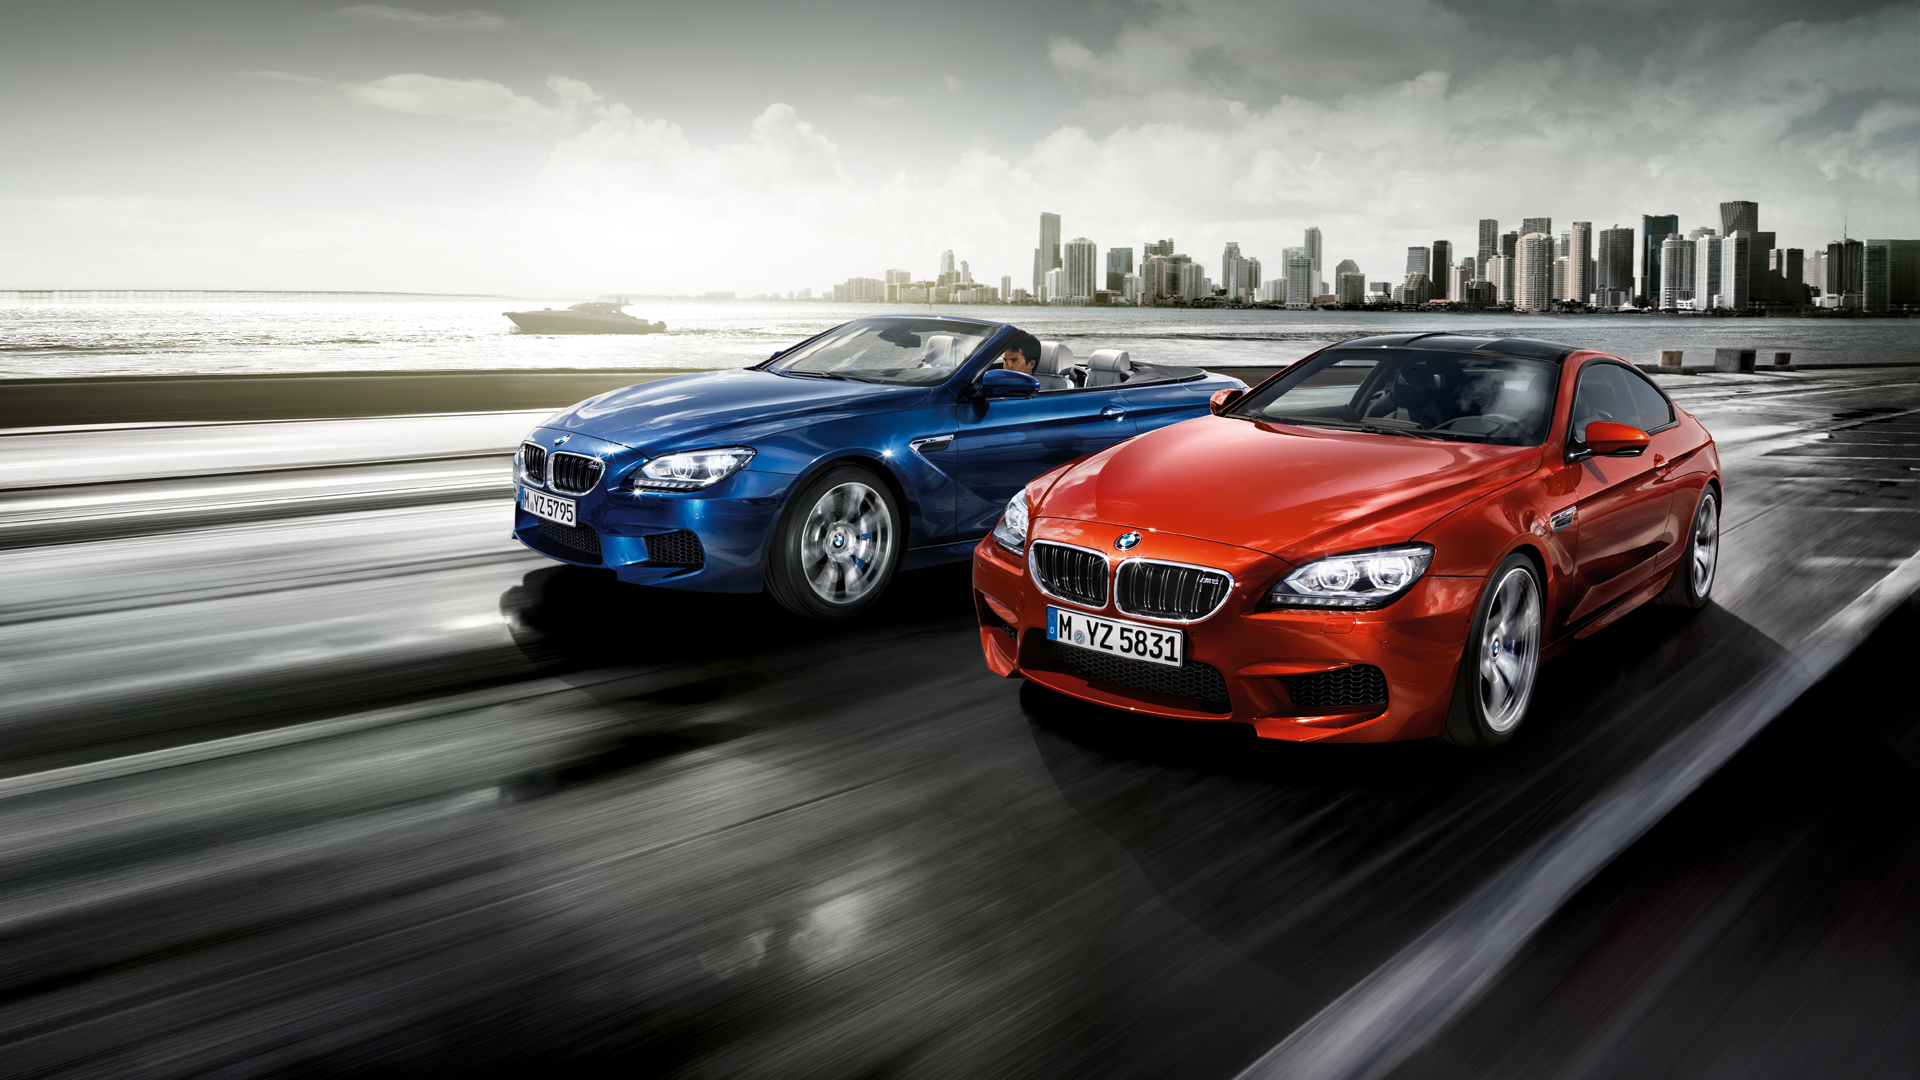 BMW M6 convertible image gallery 6 19202